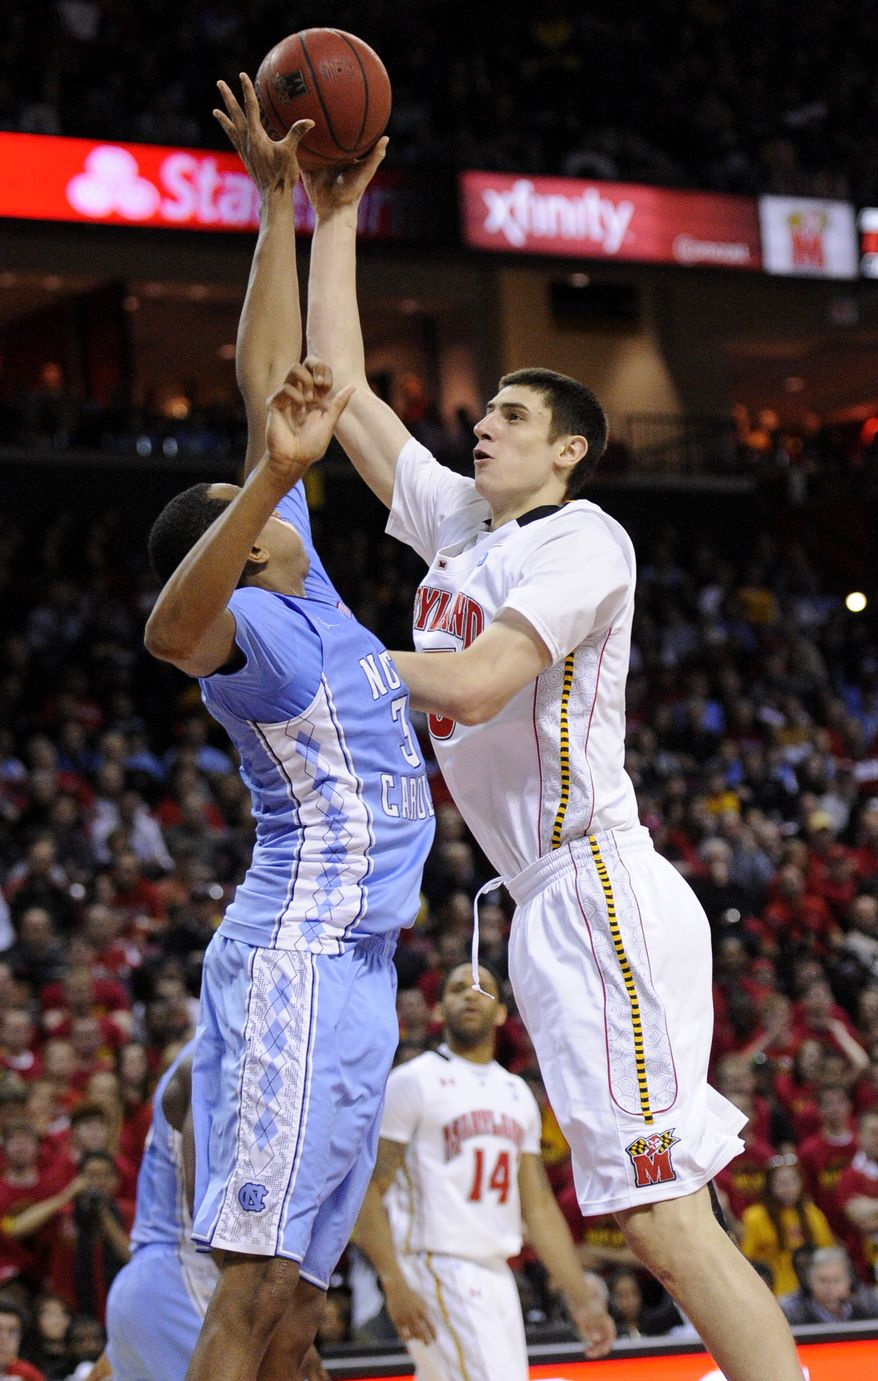 Maryland center Alex Len, right, goes to the basket against North Carolina forward John Henson, during the second half of an NCAA basketball game, Saturday, Feb. 4, 2012, in College Park, Md. North Carolina won 83-74. (AP Photo/Nick Wass)